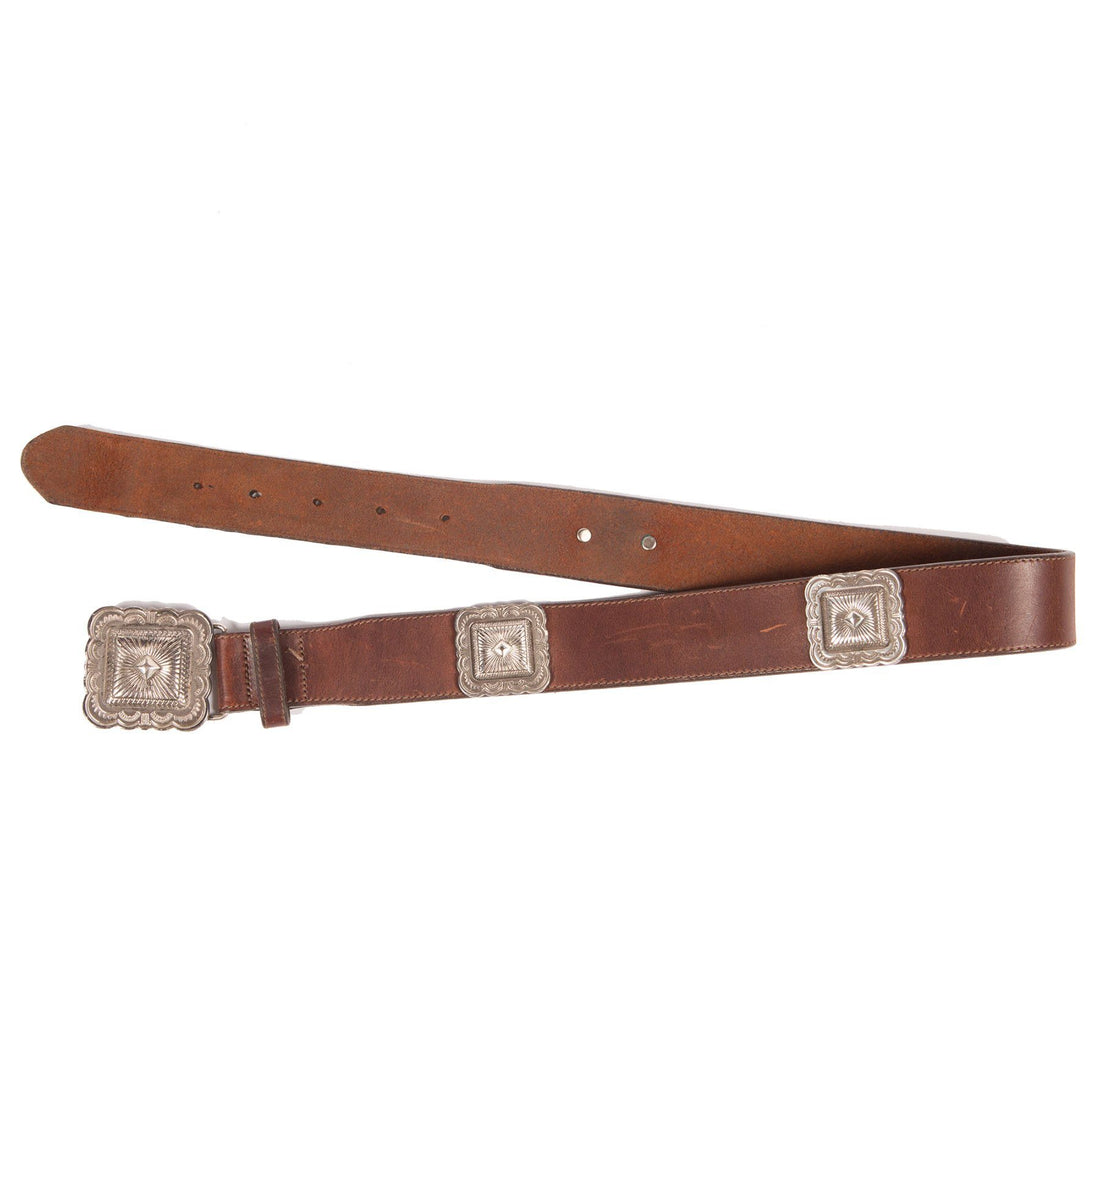 90's The Territory Ahead Leather Concho Belt - Vintage - Iron and Resin